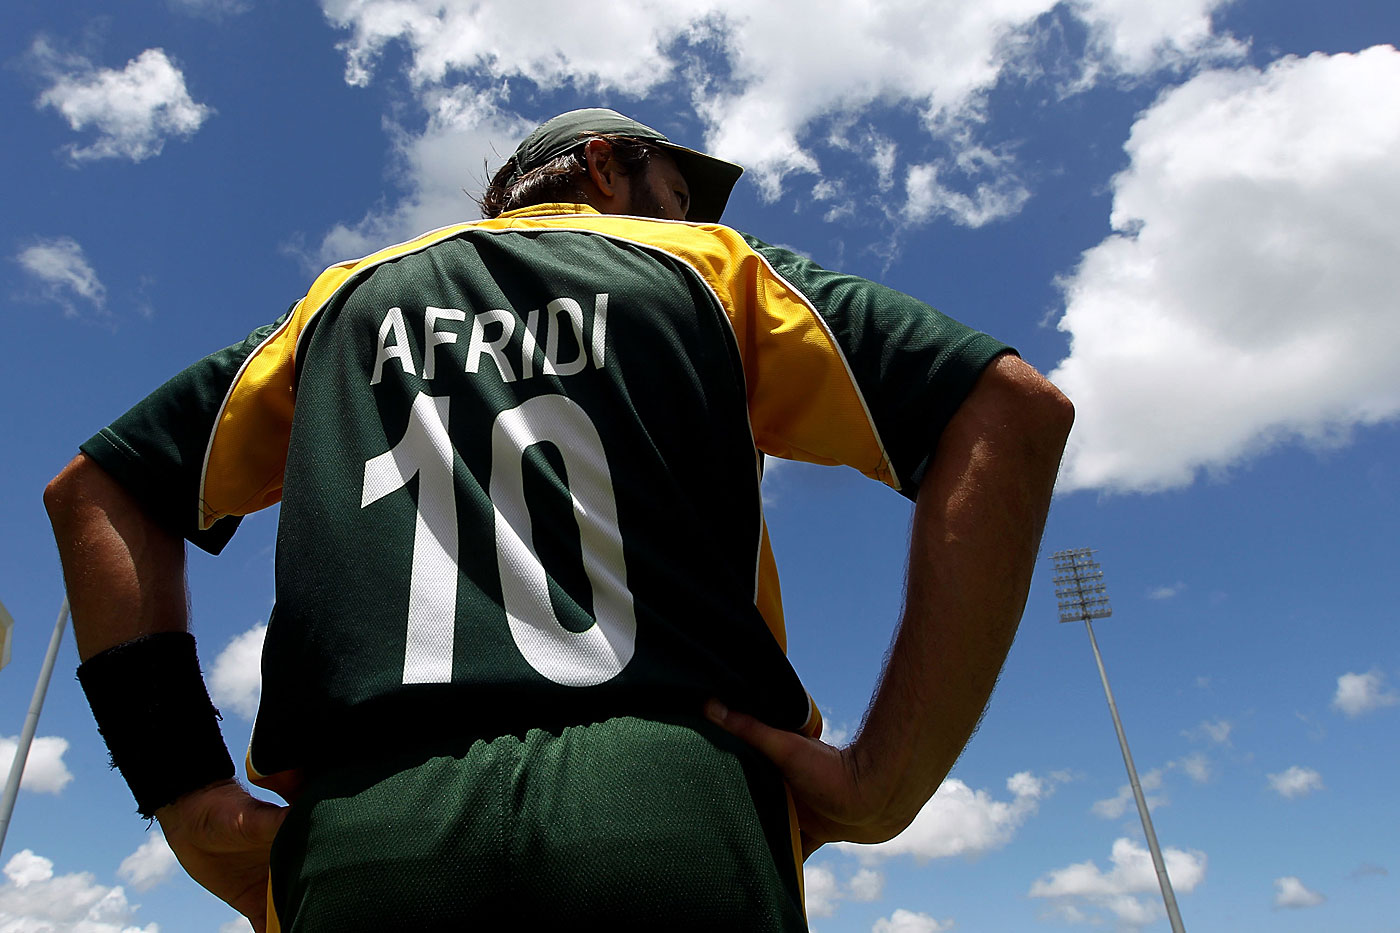 Jersey No. 10: Shahid Afridi takes the field